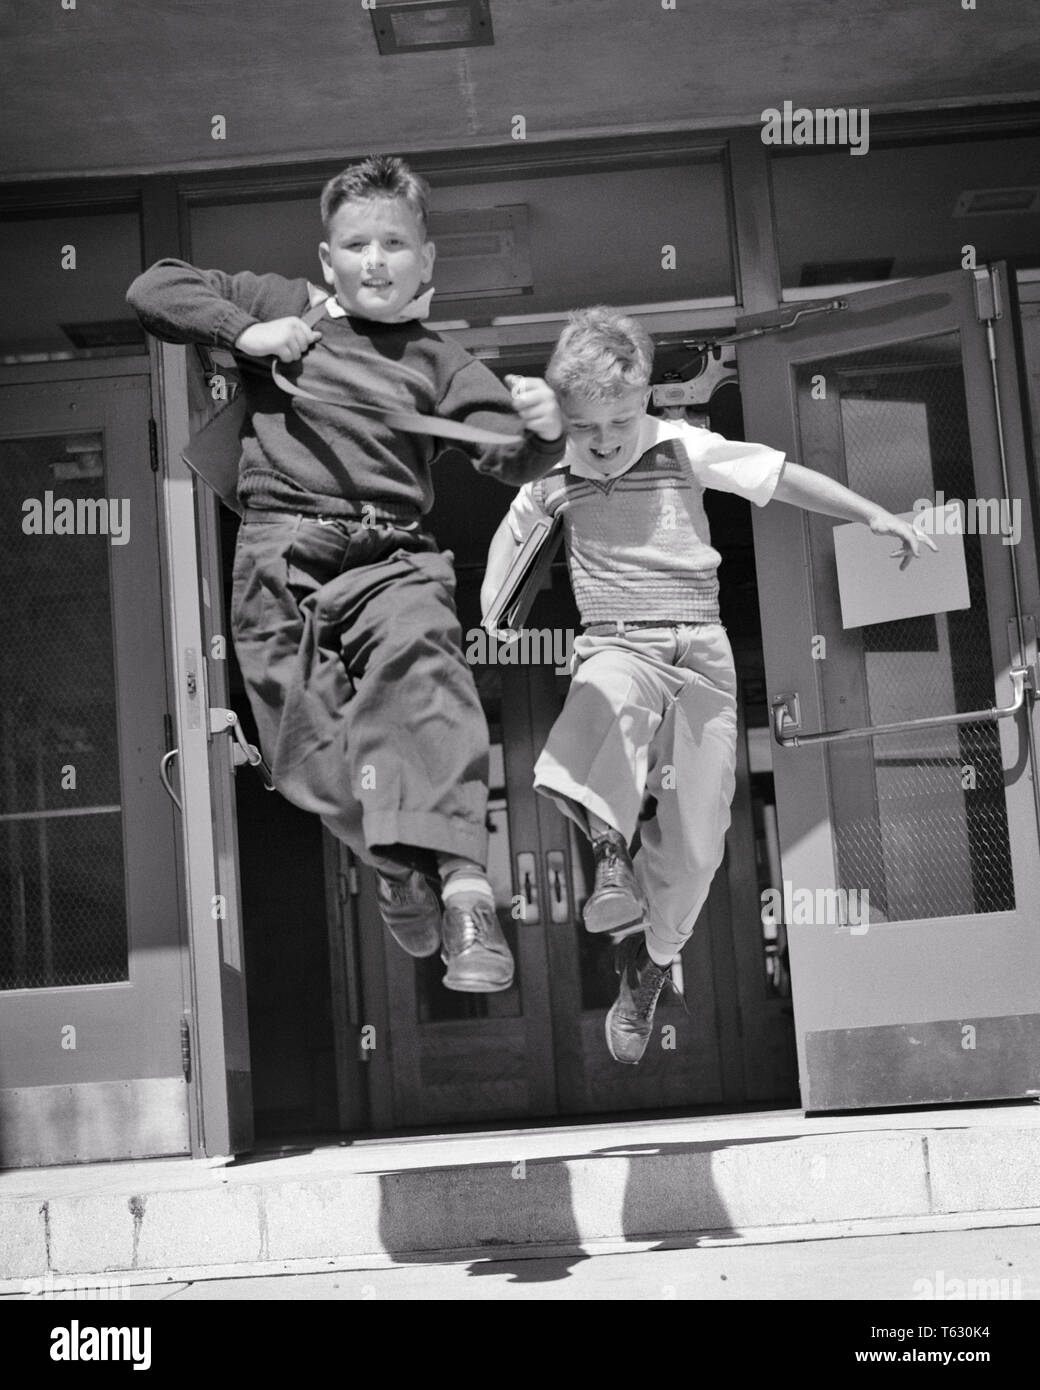 1950s two boys running jumping out the doors of ELEMENTARY school  - s617 HAR001 HARS HEALTHINESS COPY SPACE FRIENDSHIP FULL-LENGTH INSPIRATION MALES RELEASED SIBLINGS CONFIDENCE B&W FREEDOM SCHOOLS GRADE HAPPINESS CHEERFUL ADVENTURE LEAP EXCITEMENT OF THE FREE PRIMARY SIBLING SMILES ESCAPE FRIENDLY JOYFUL K-12 LIBERATED PANORAMIC GRADE SCHOOL GROWTH JUVENILES SCHOOLMATES TOGETHERNESS BLACK AND WHITE CAUCASIAN ETHNICITY CLASSMATES HAR001 OLD FASHIONED - Stock Image